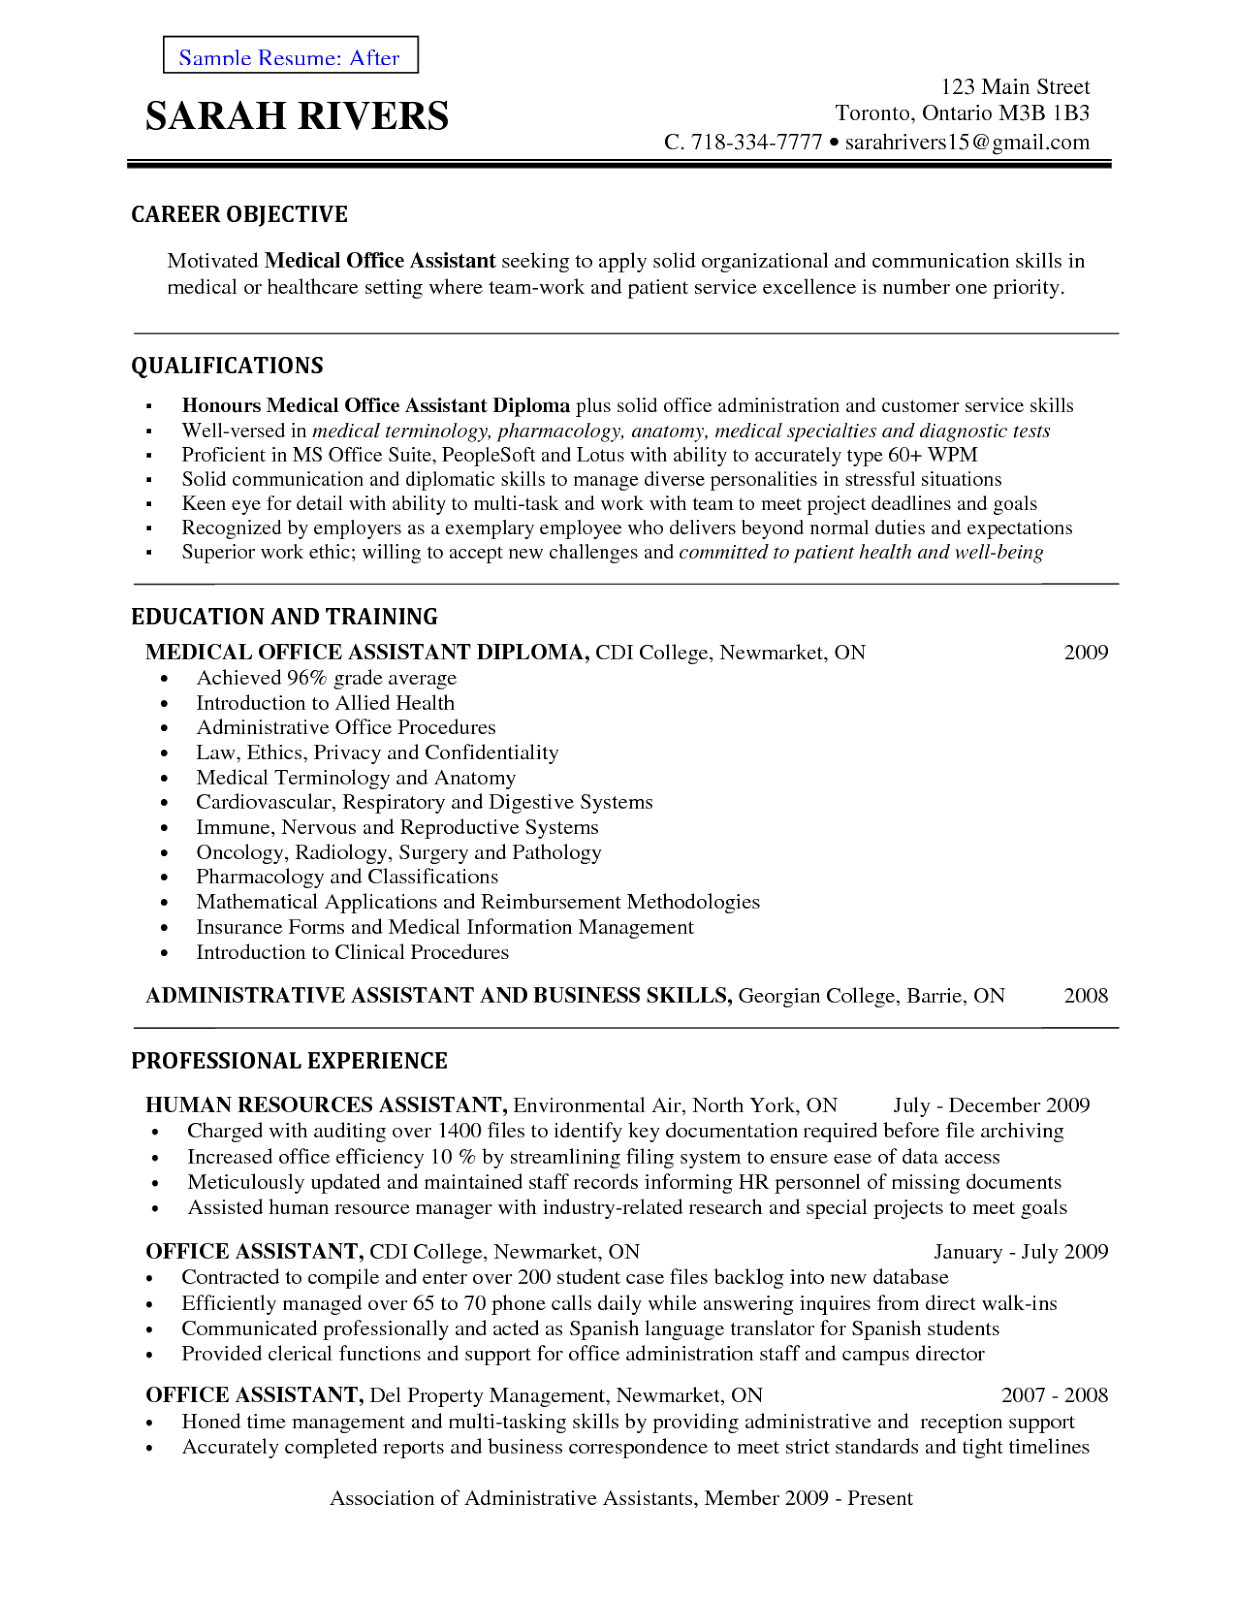 construction general labourer resume resume builder general labor general laborer resume cv template dayjob resume builder general labor general laborer resume cv template dayjob